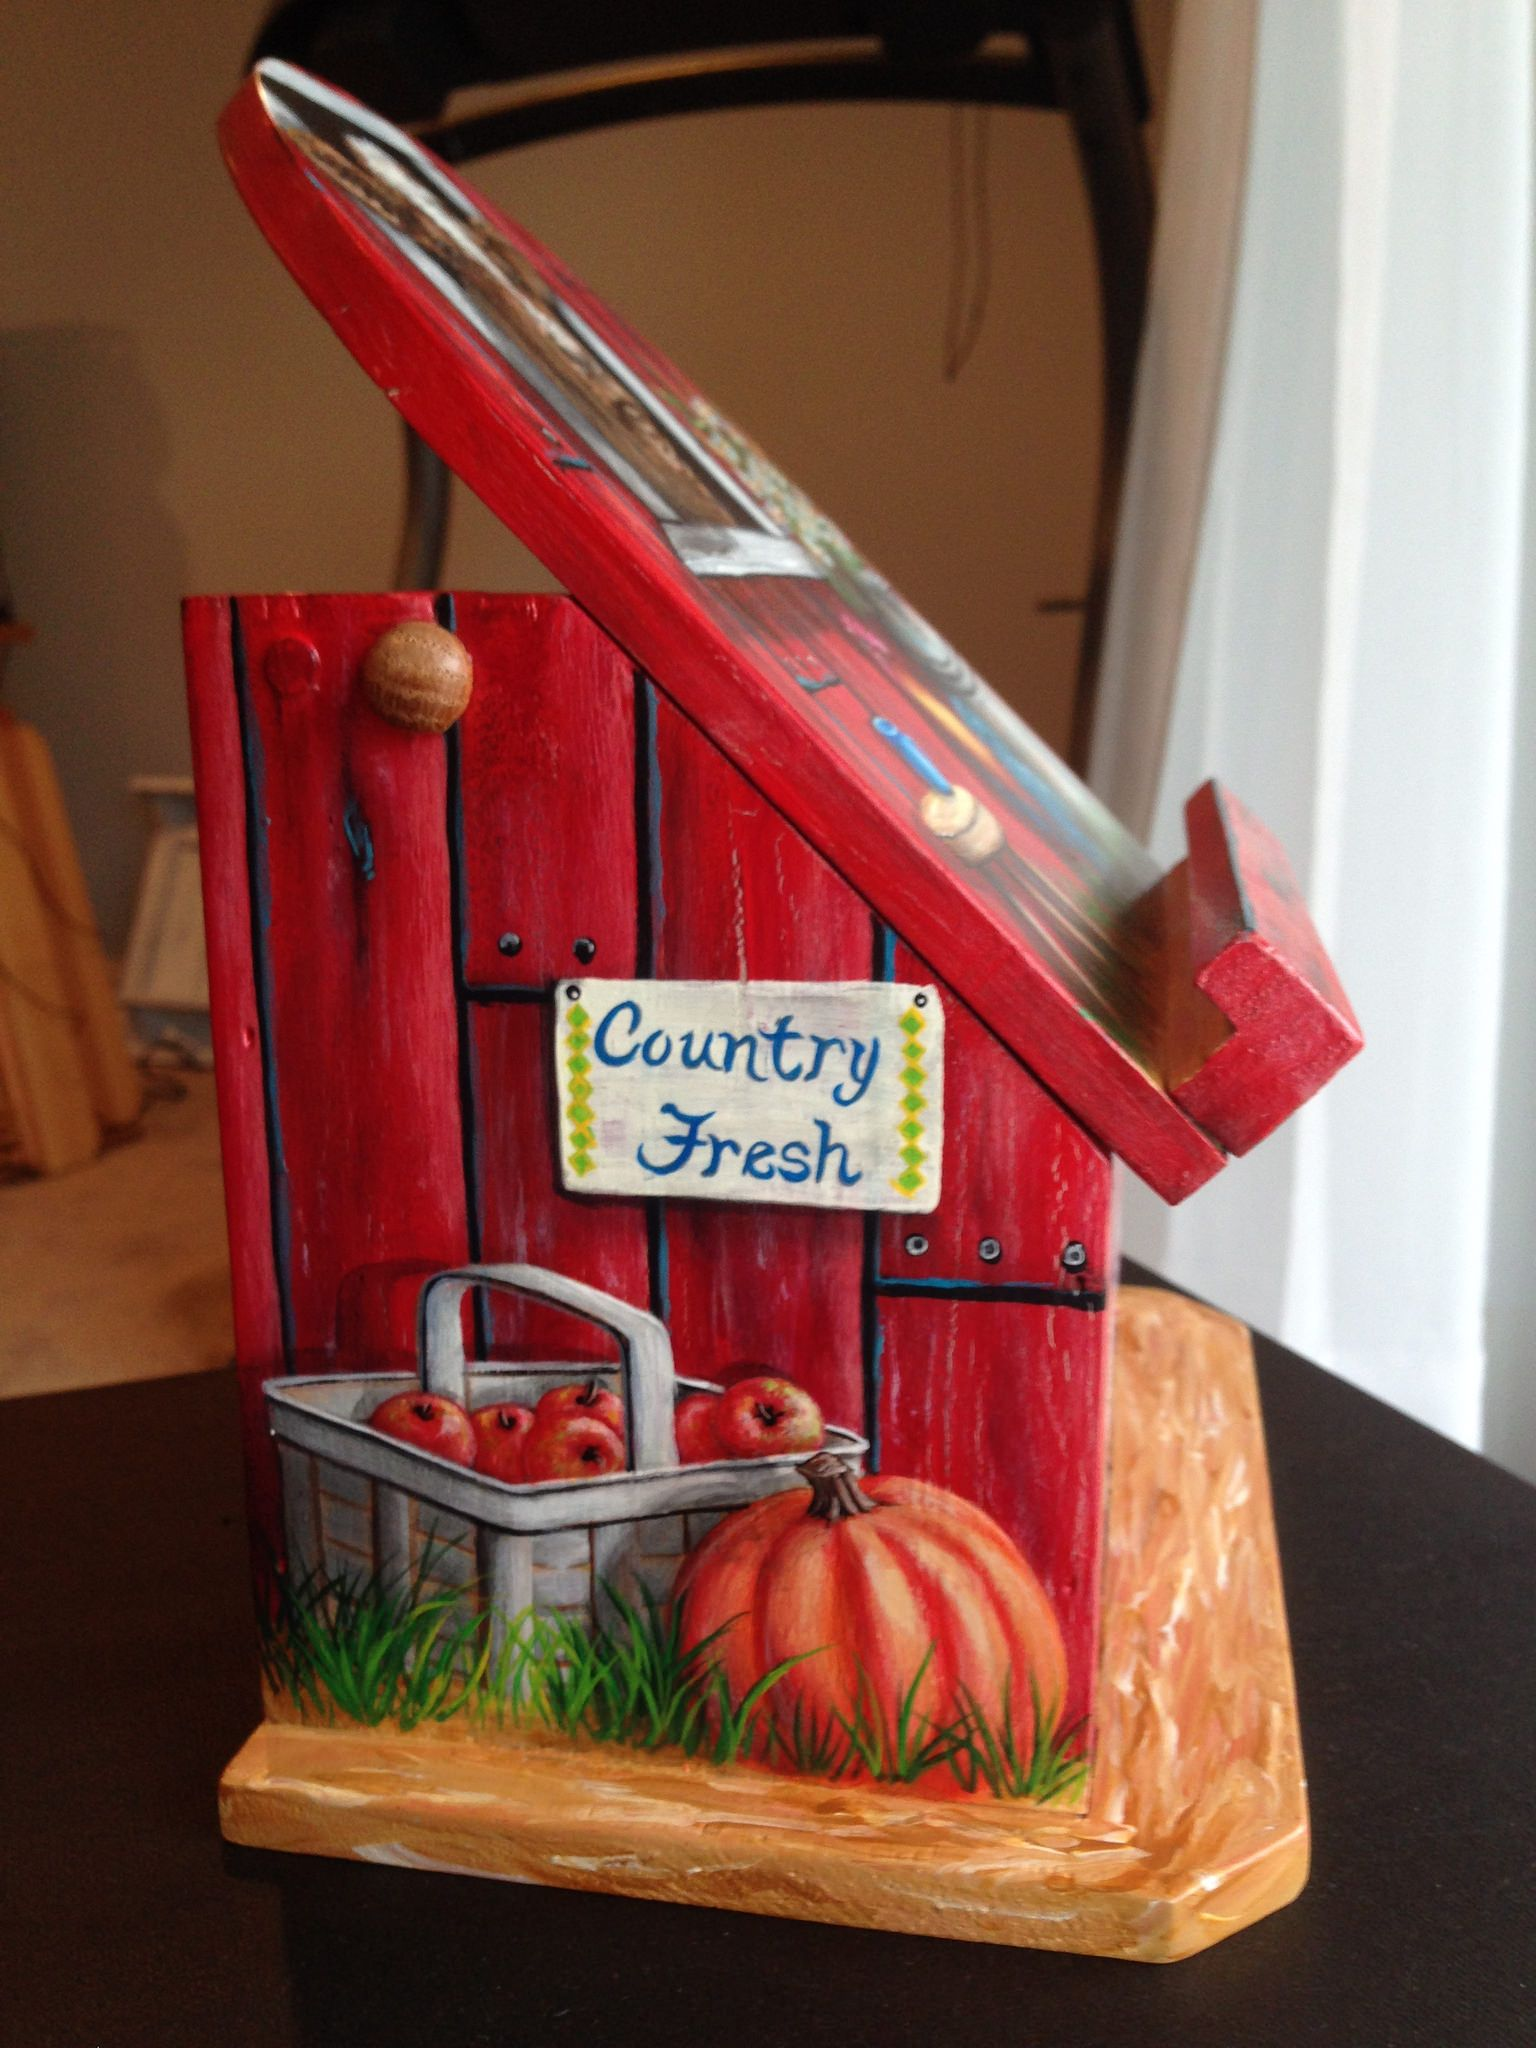 https://flic.kr/p/B5Qpmi | Country Farm Wood Recipe Box | Red barn with a cow, rooster, milk can, wagon wheel, apple basket recipe box, hand painted by sherrylpaintz